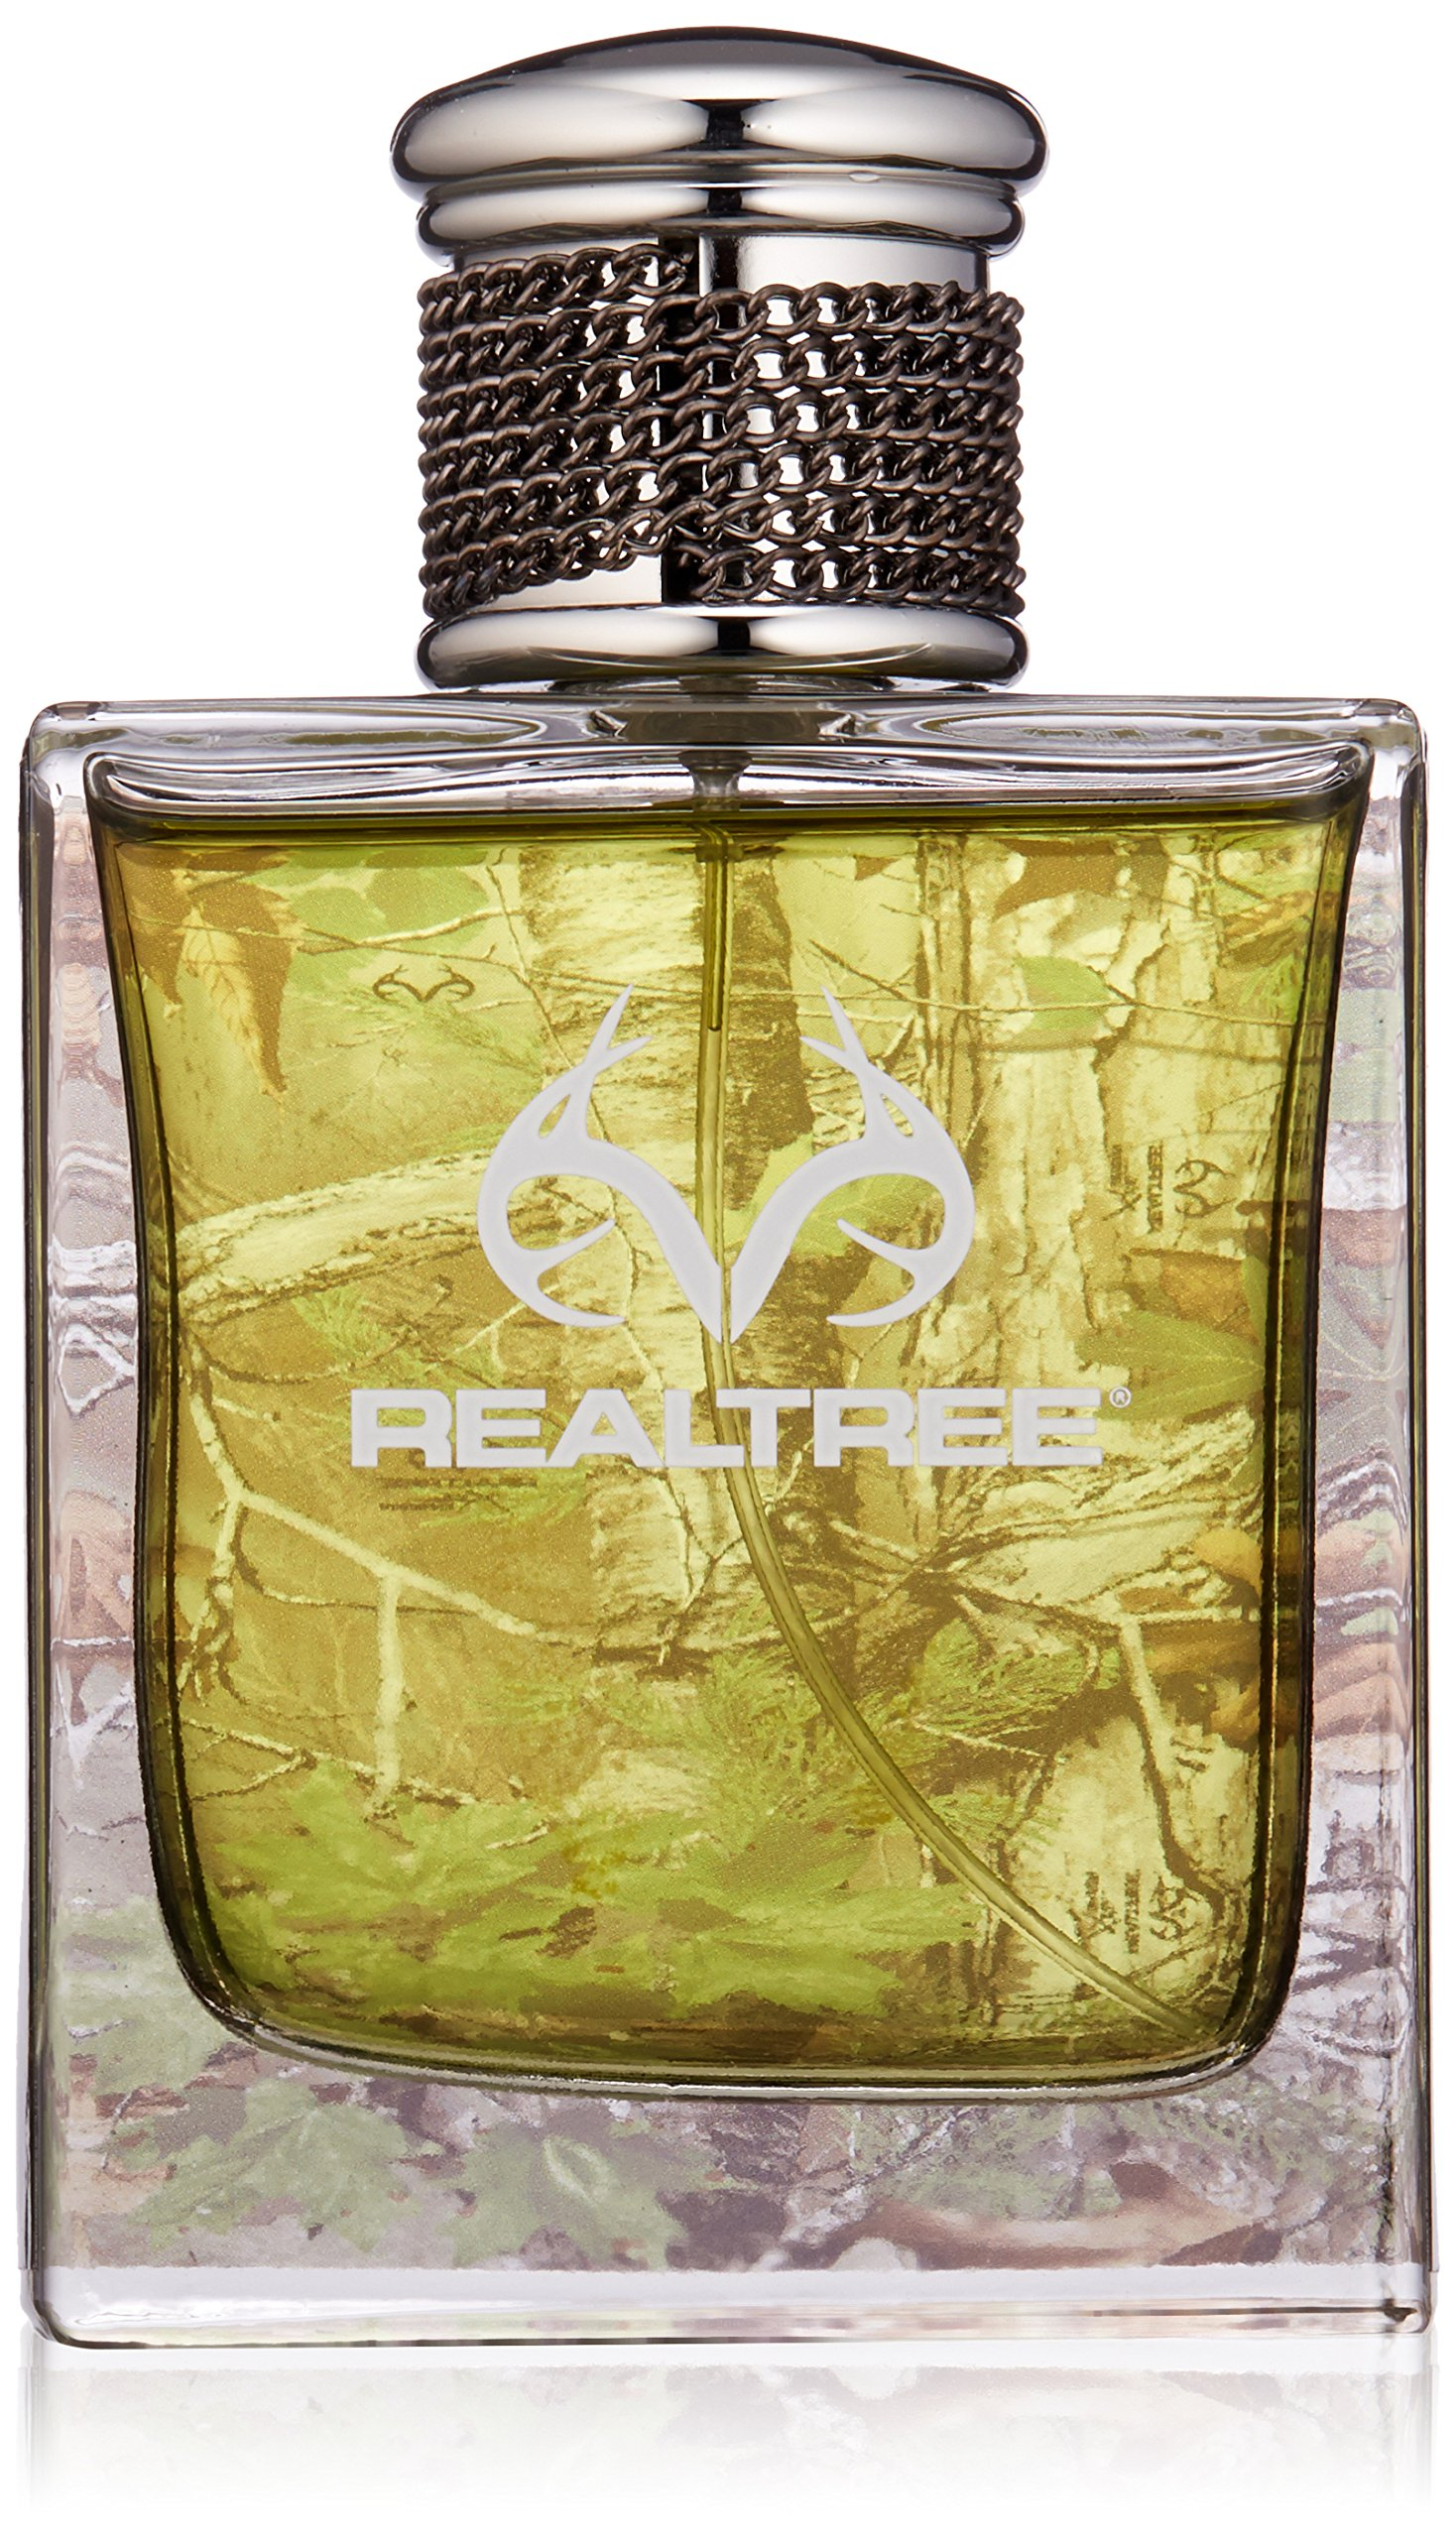 Realtree Colognes for Him, 3.4 Fluid Ounce by Realtree